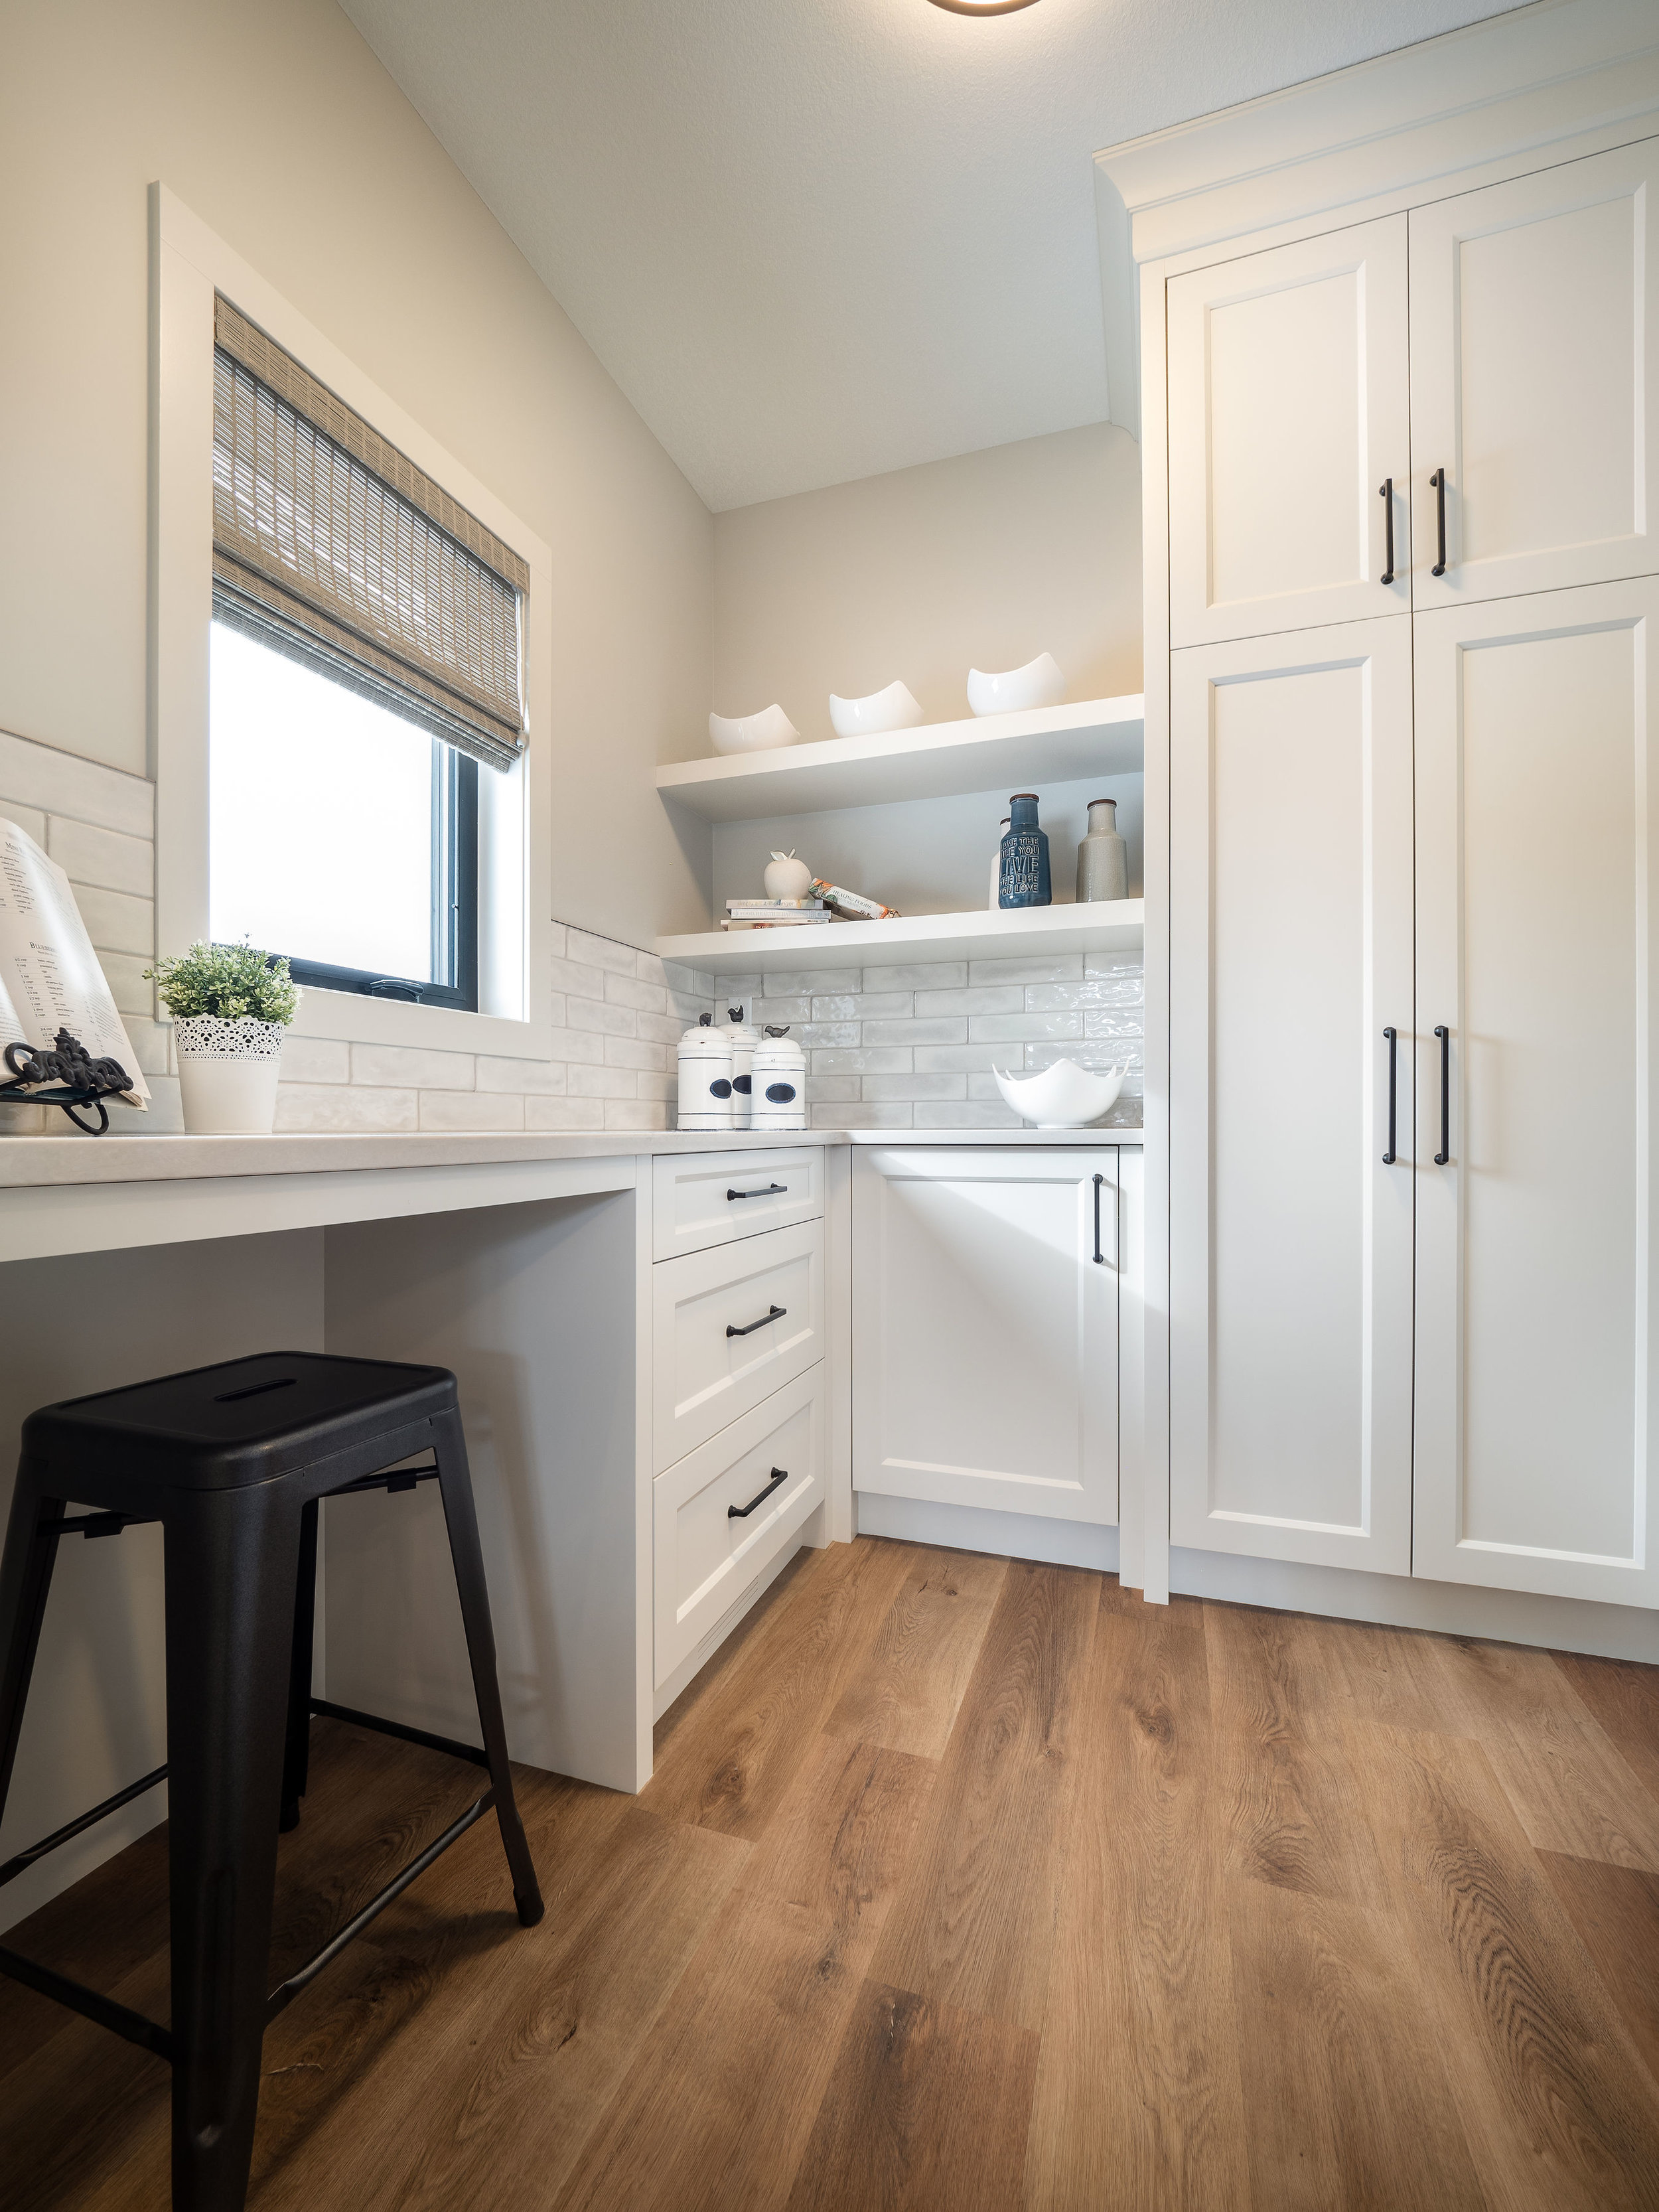 A walk through butlers pantry off the garage is the ideal location to unload those groceries and also function as a drop station.